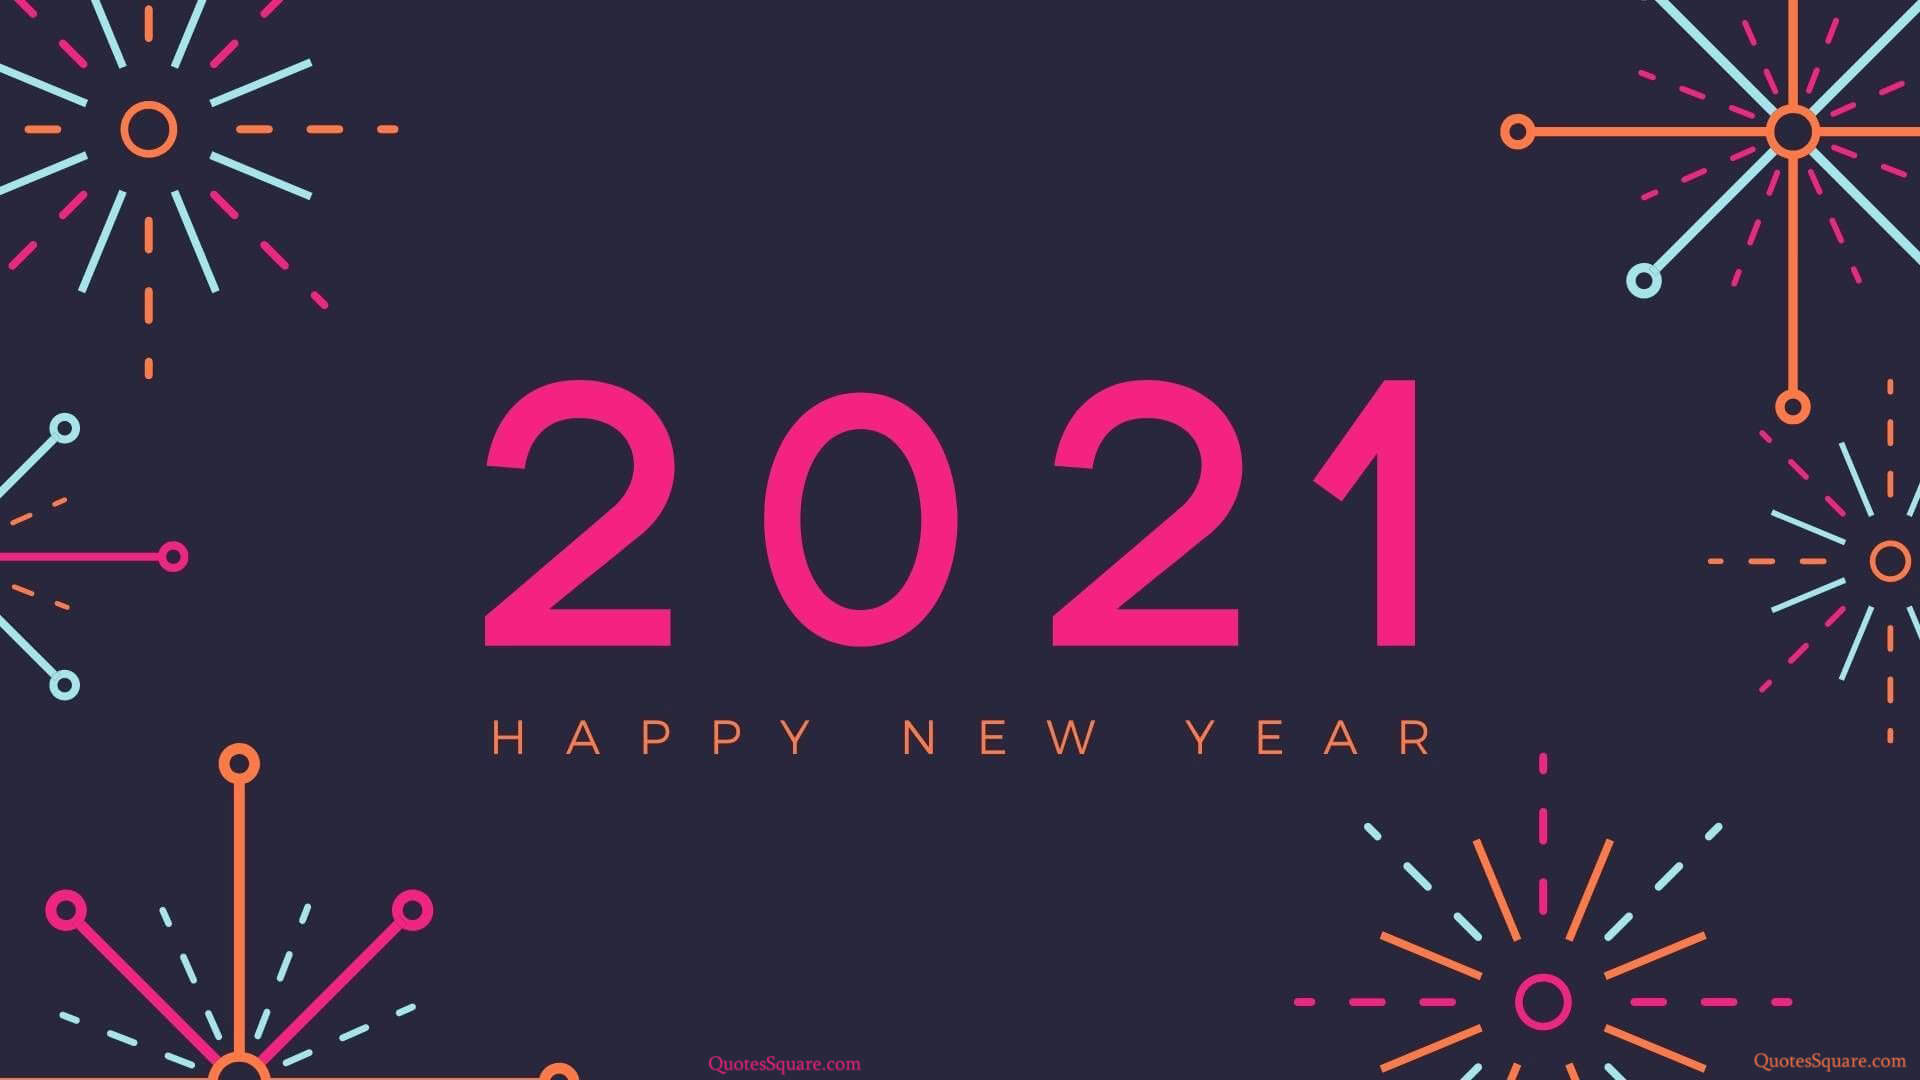 50 Happy New Year 2021 Background Images In Hd Quotes Square